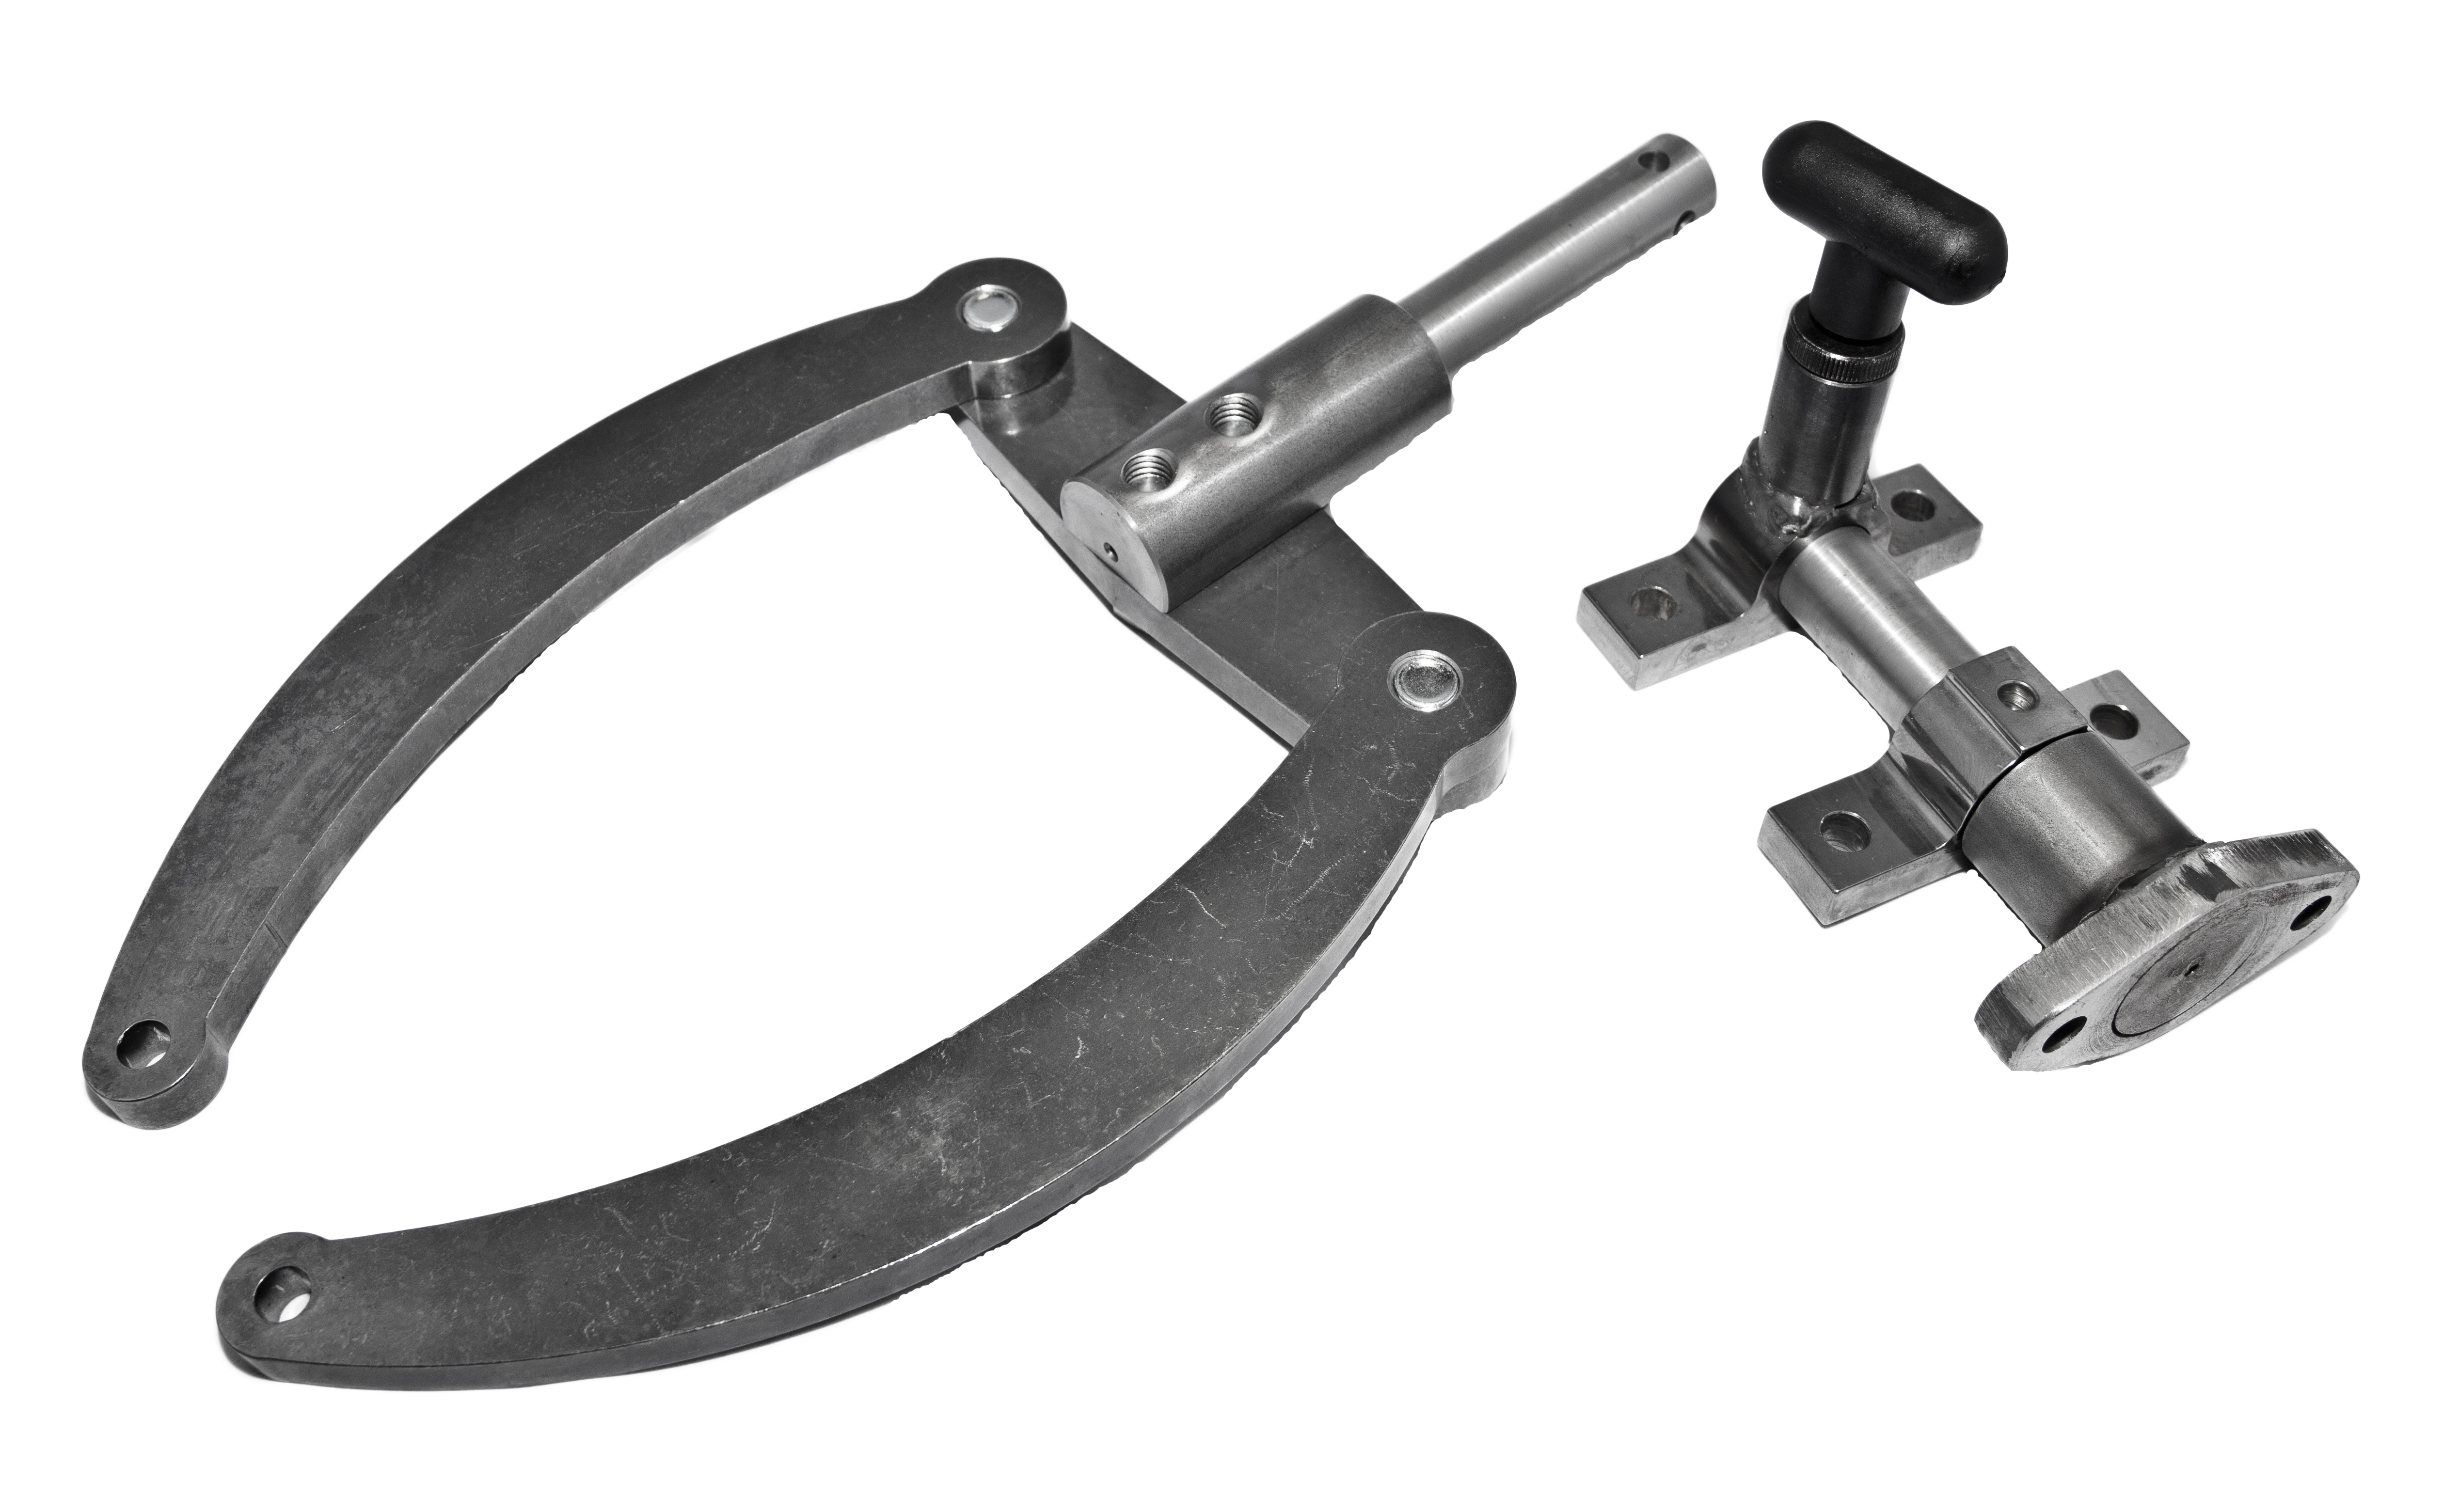 Workbench Stand Discontinued Midwest Super Cub